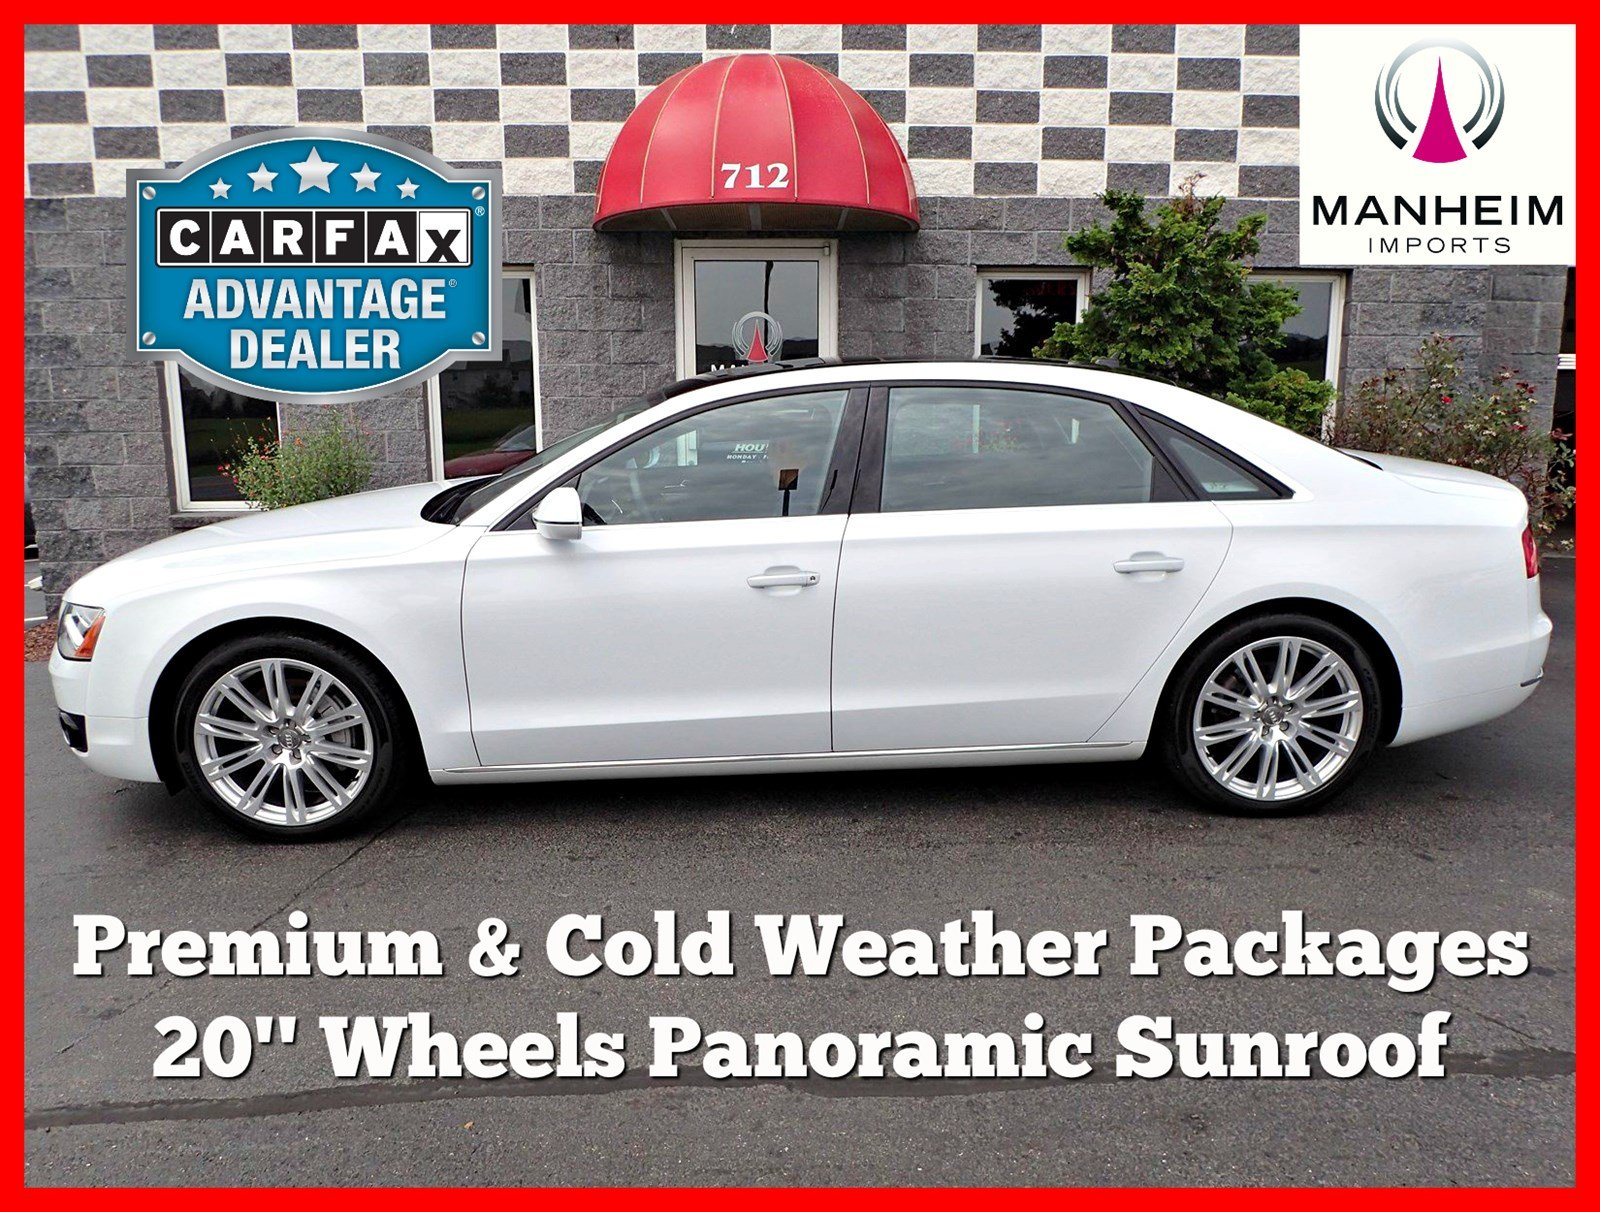 Pre Owned 2014 Audi A8 L TDI PREMIUM 4dr Car in Manheim